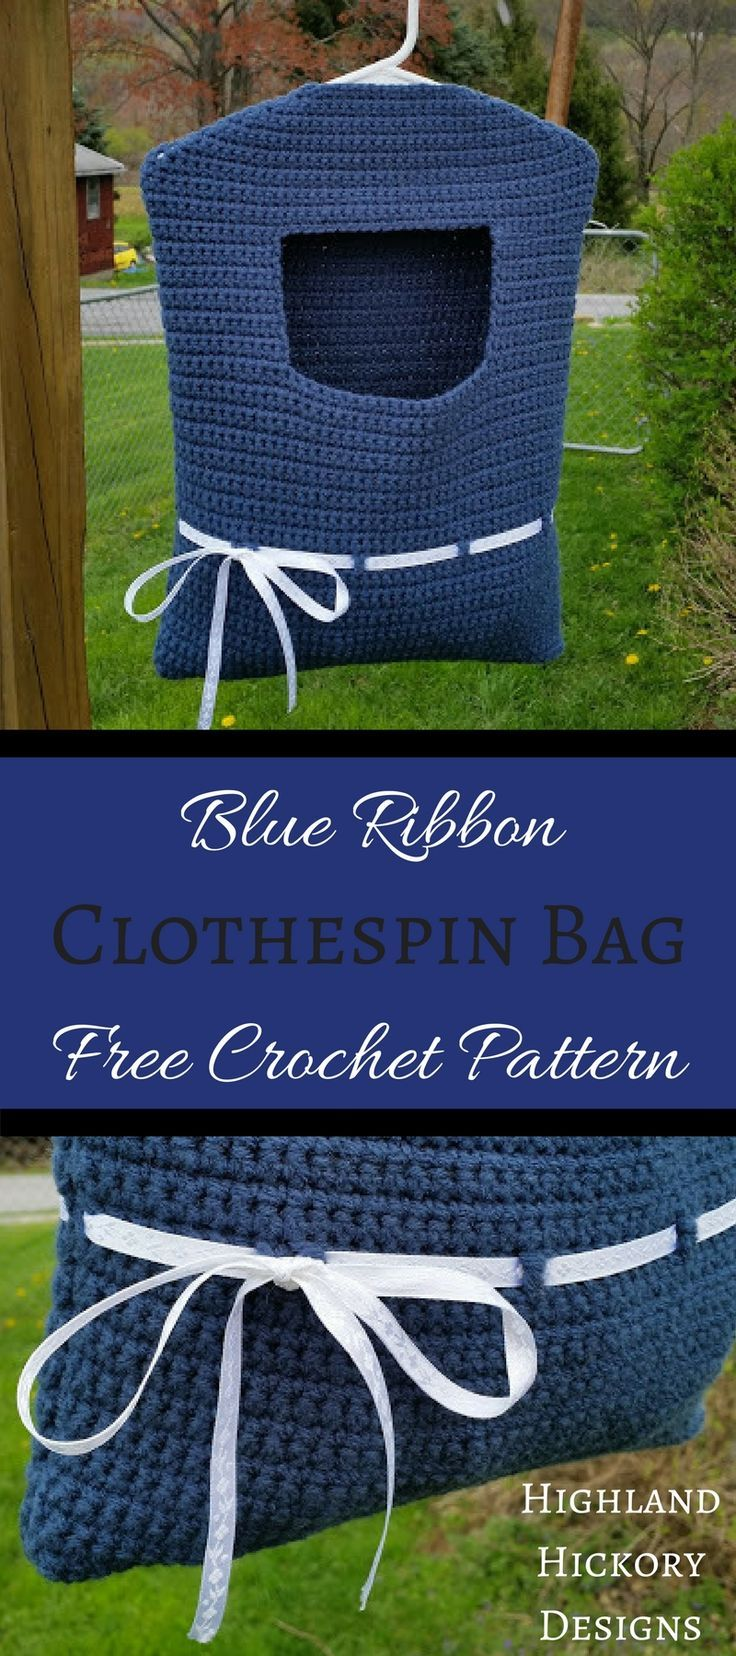 Need something to put your clothespins in when your hanging laundry on the line? Crochet your own Blue Ribbon Clothespin Bag. It's stylish and functional.